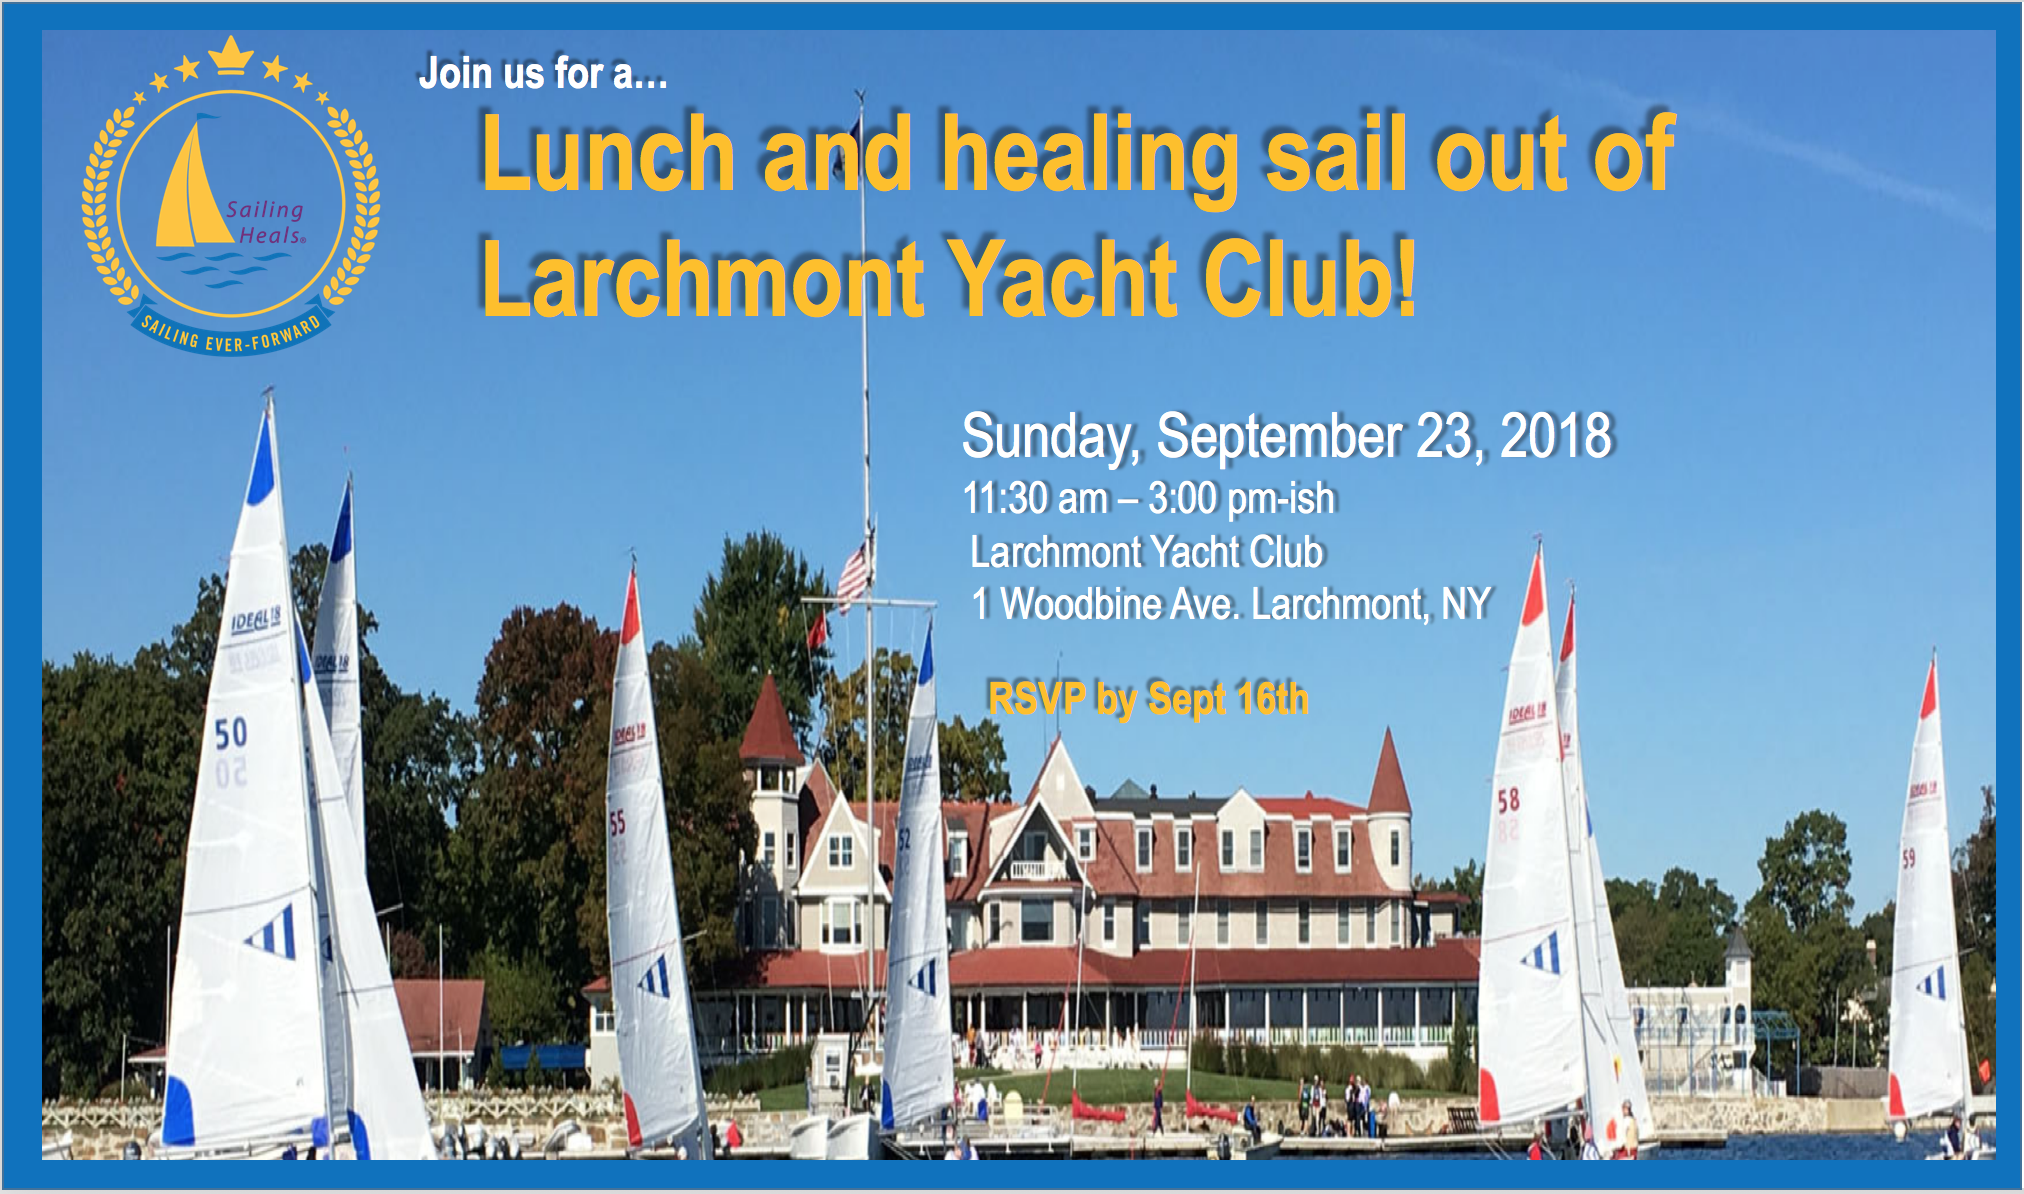 9/23/18 Larchmont lunch and healing sail